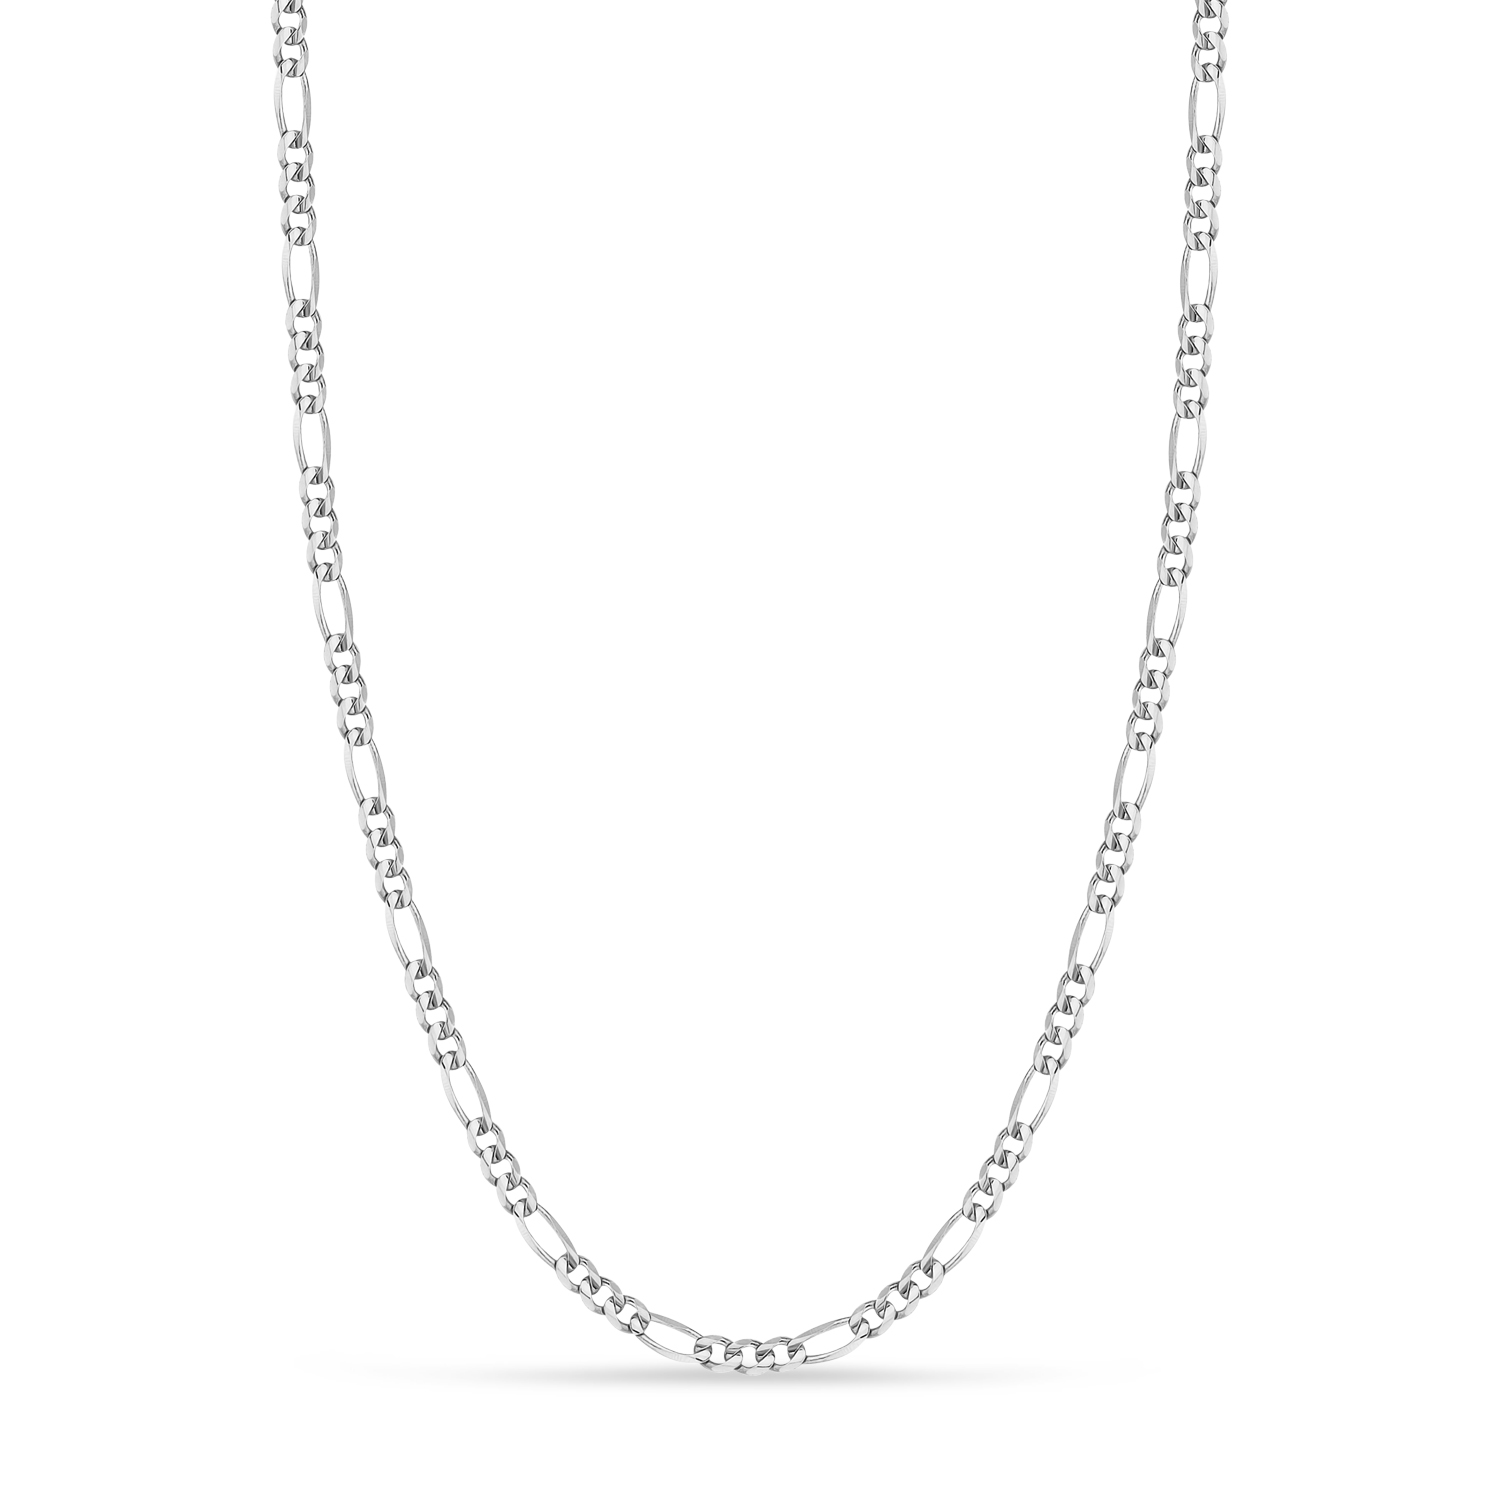 Figaro Chain Necklace With Lobster Lock 14k White Gold